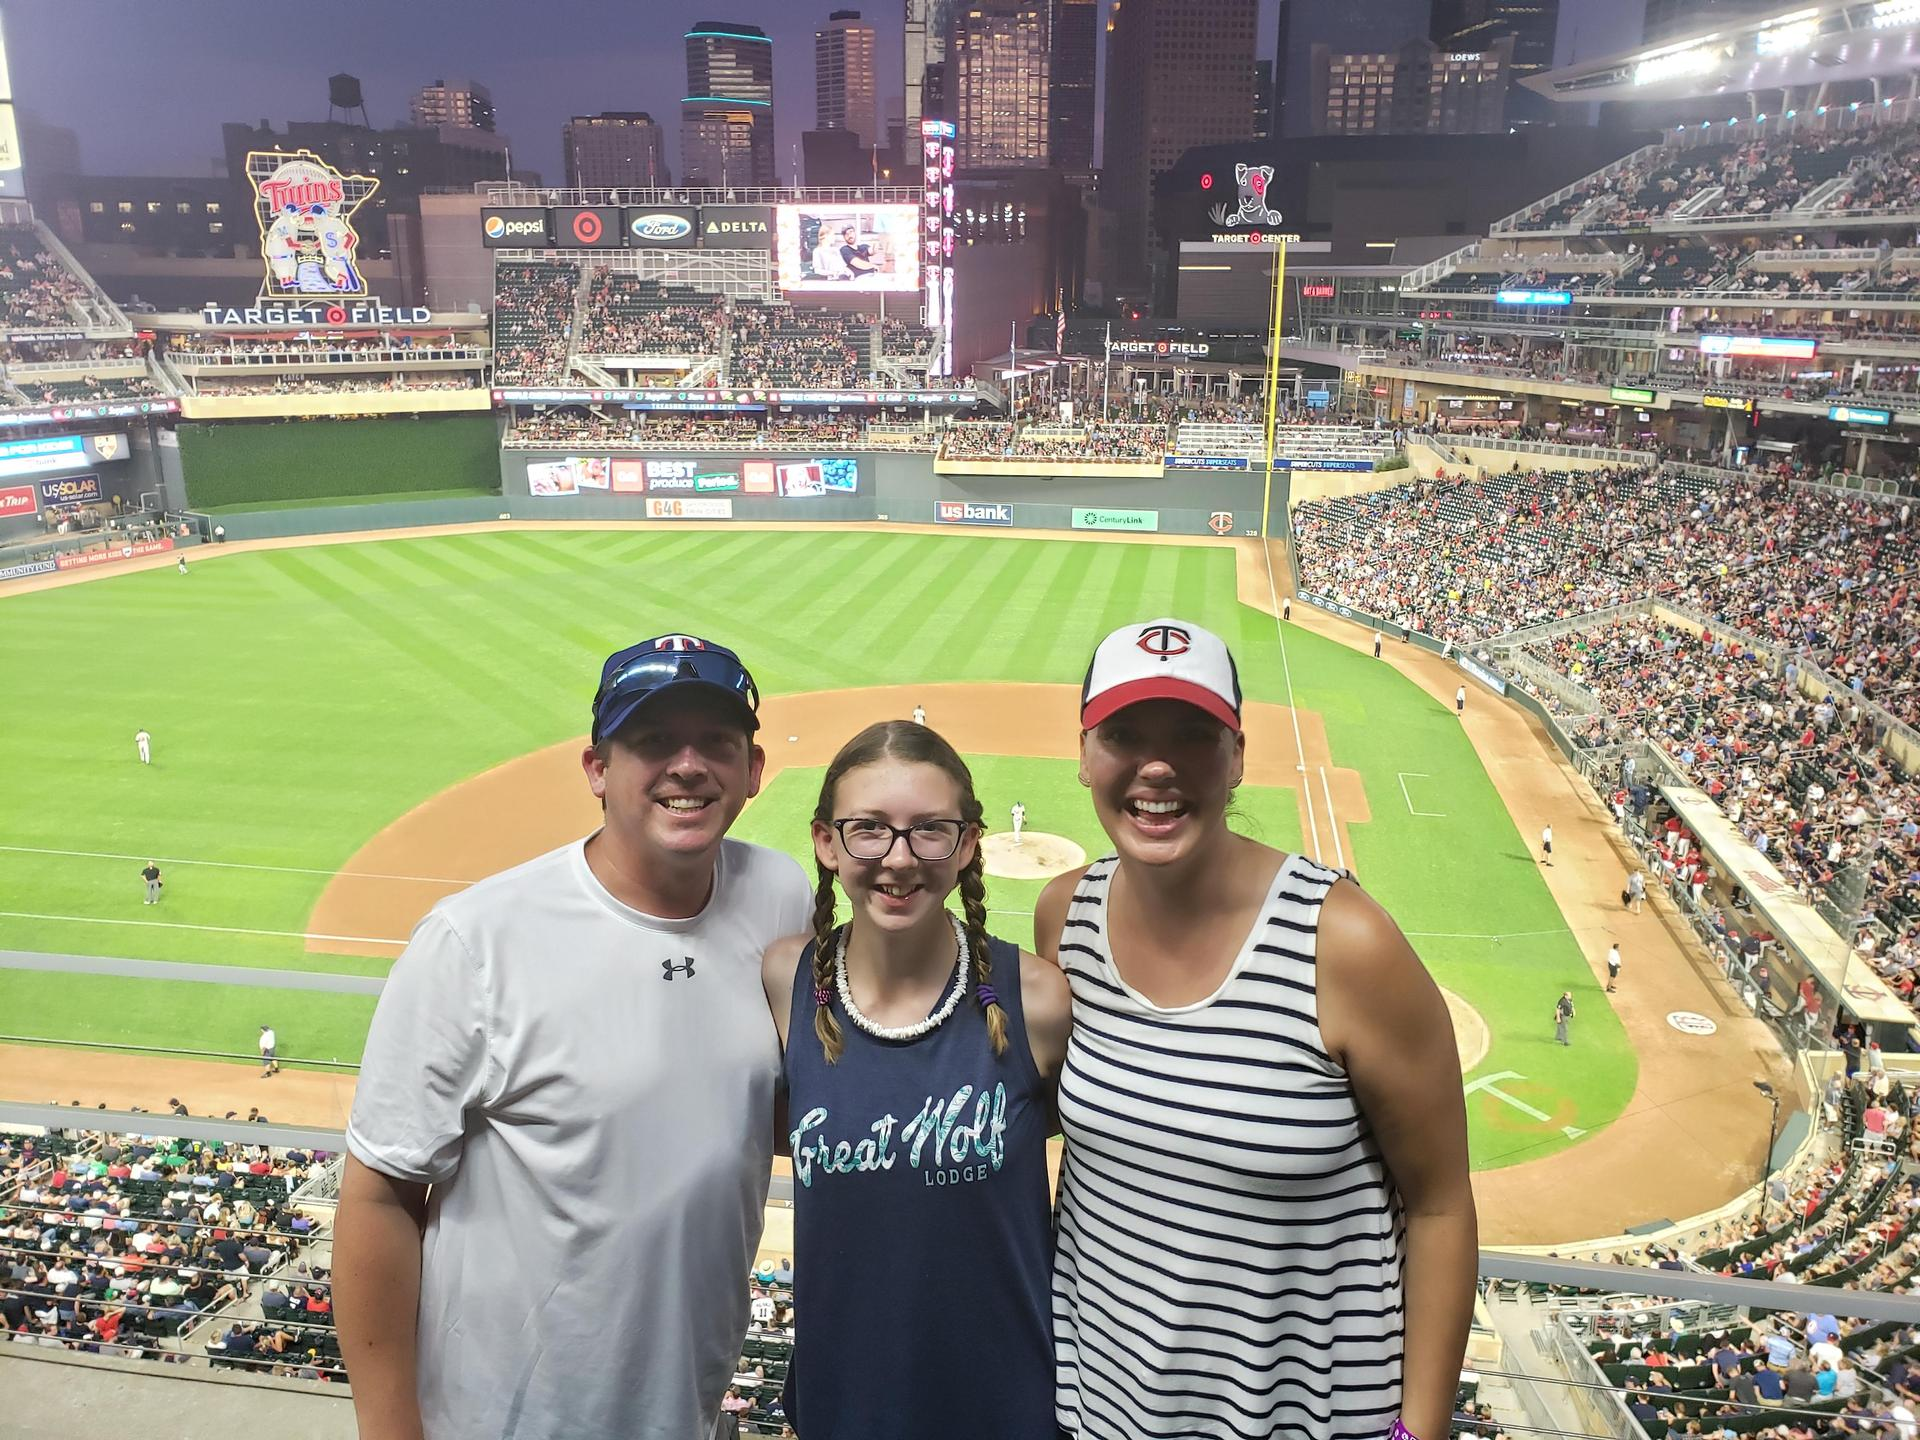 man, woman and girl pose in front of Target Field